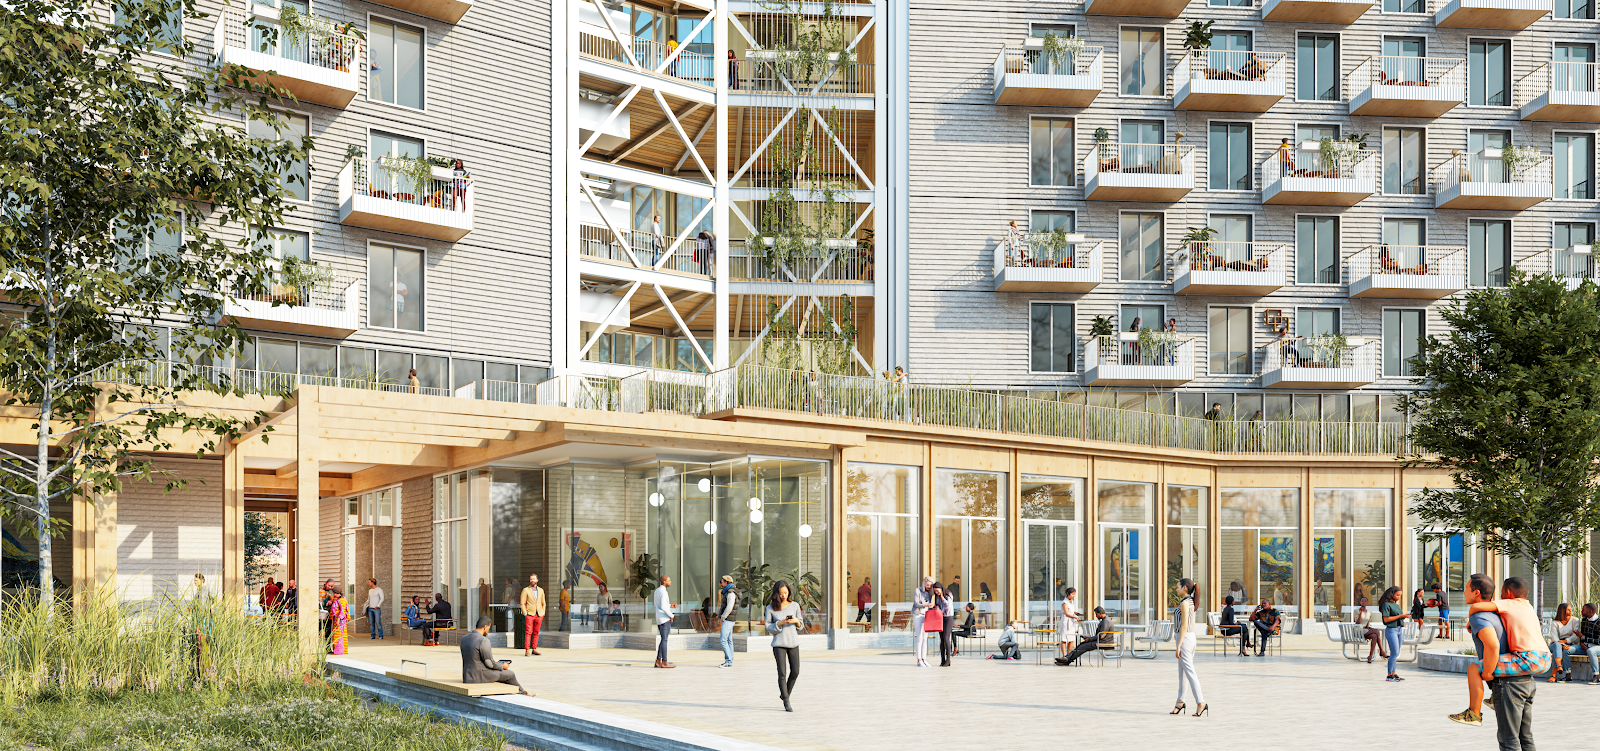 A rendering of PMX 15 outdoor space and entrance